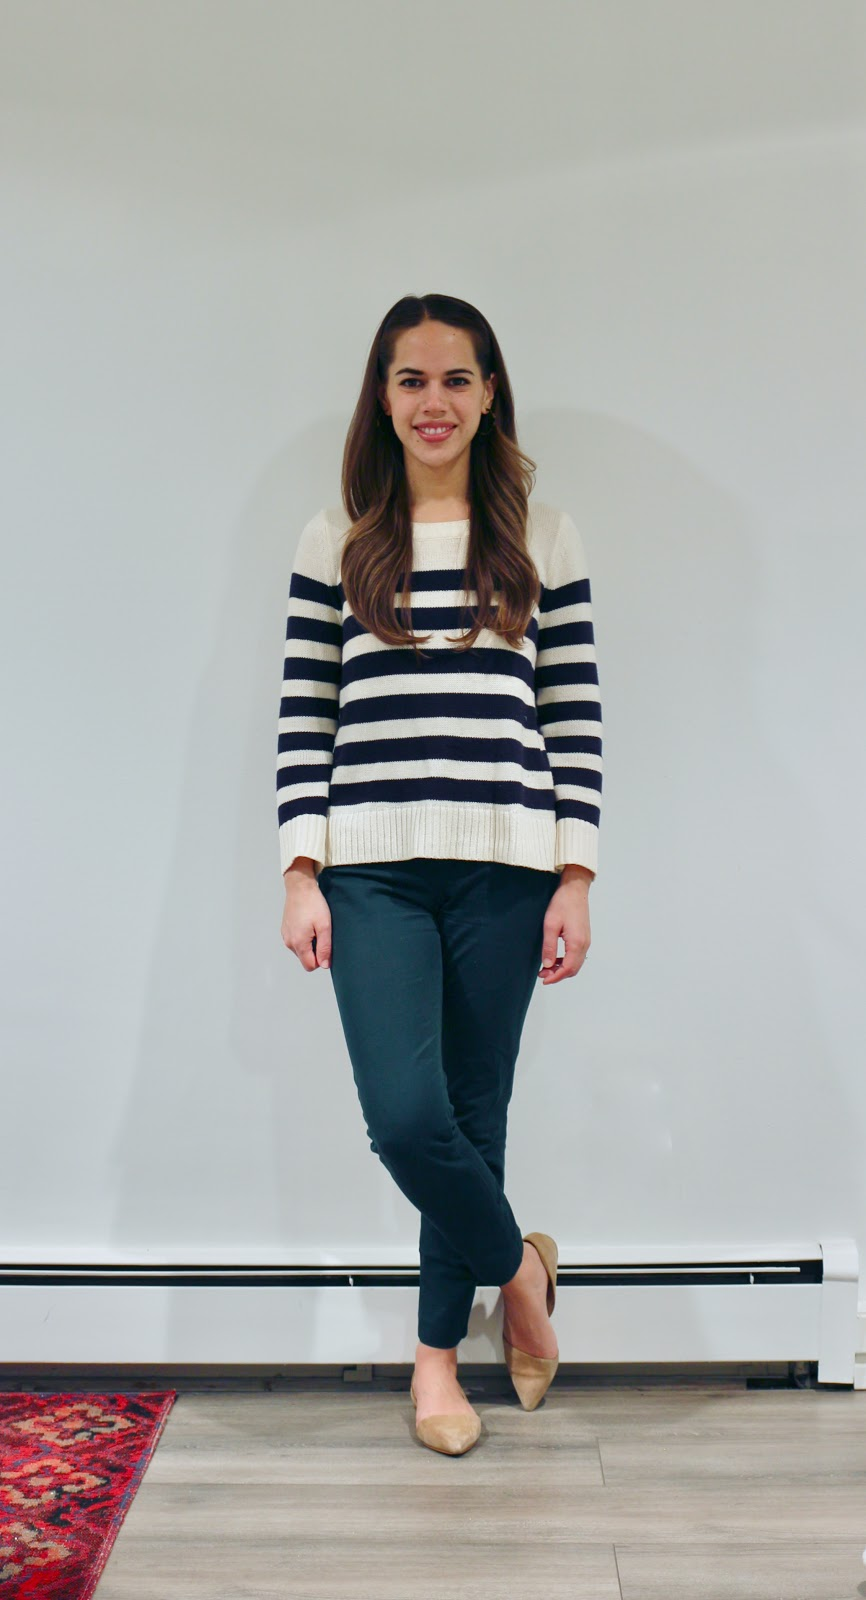 Jules in Flats - Striped Sweater with Green Ankle Pants (Business Casual Winter Workwear on a Budget)